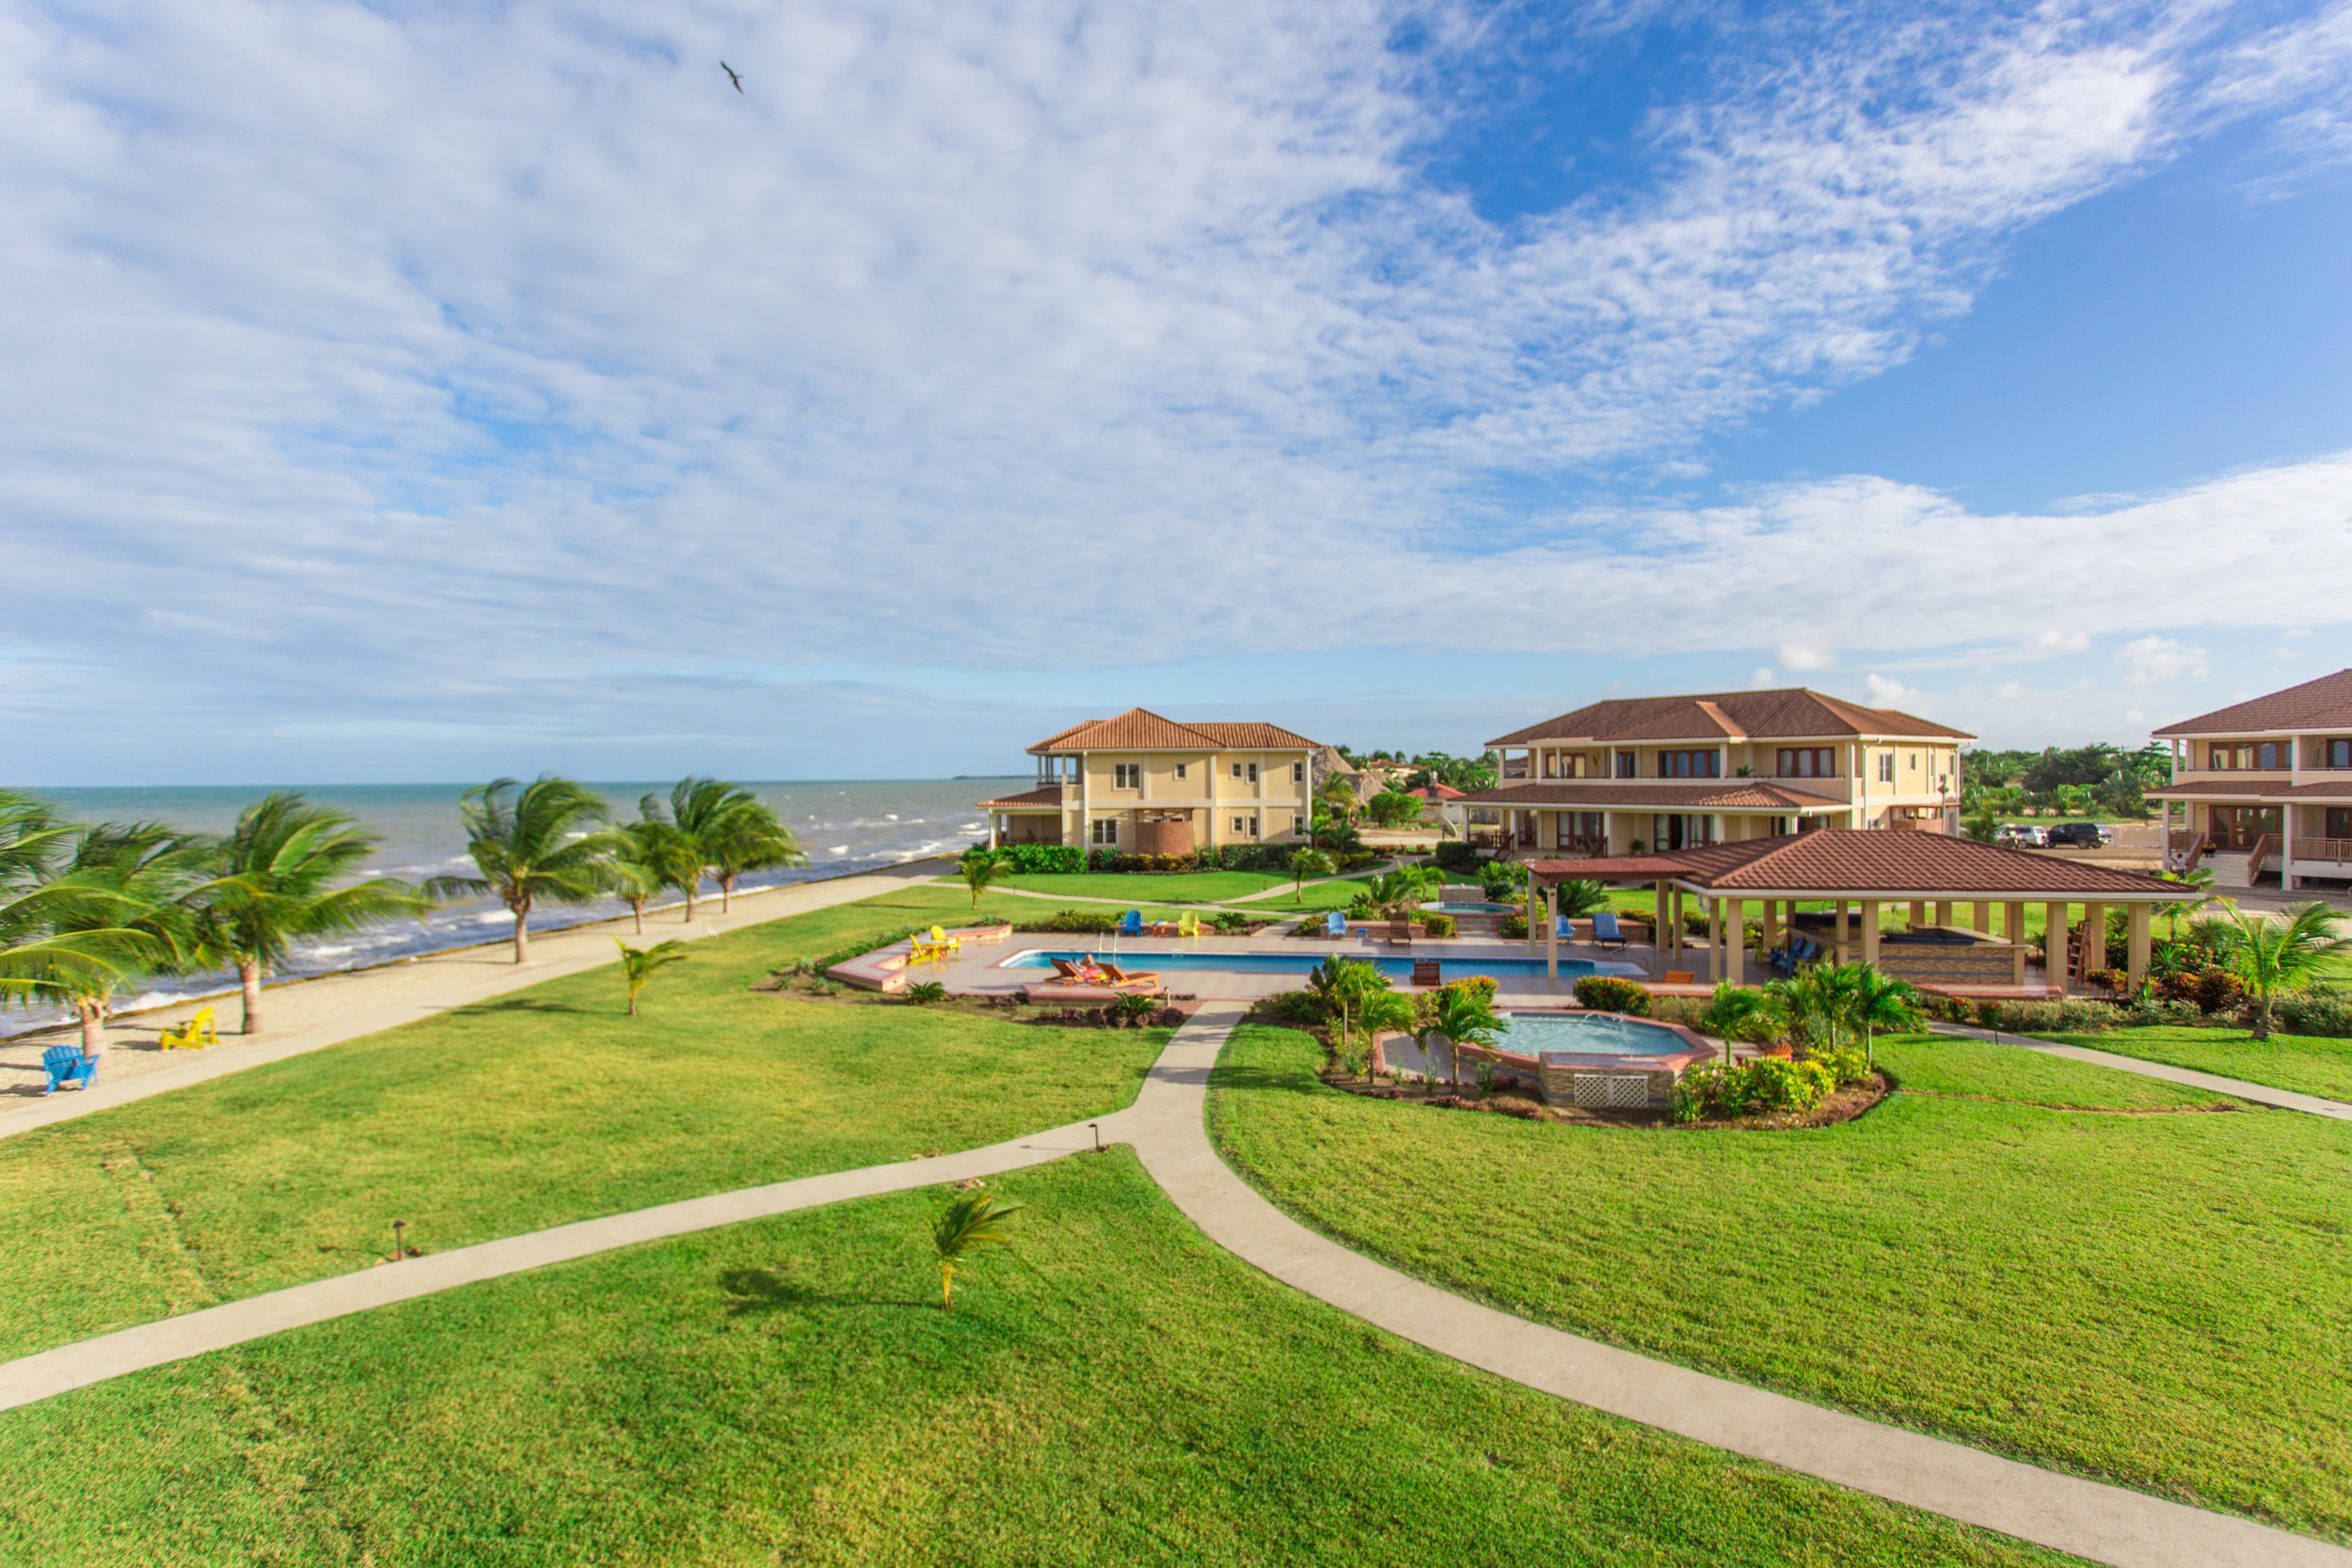 Resort featured: Seiri del mar, hopkins, belize